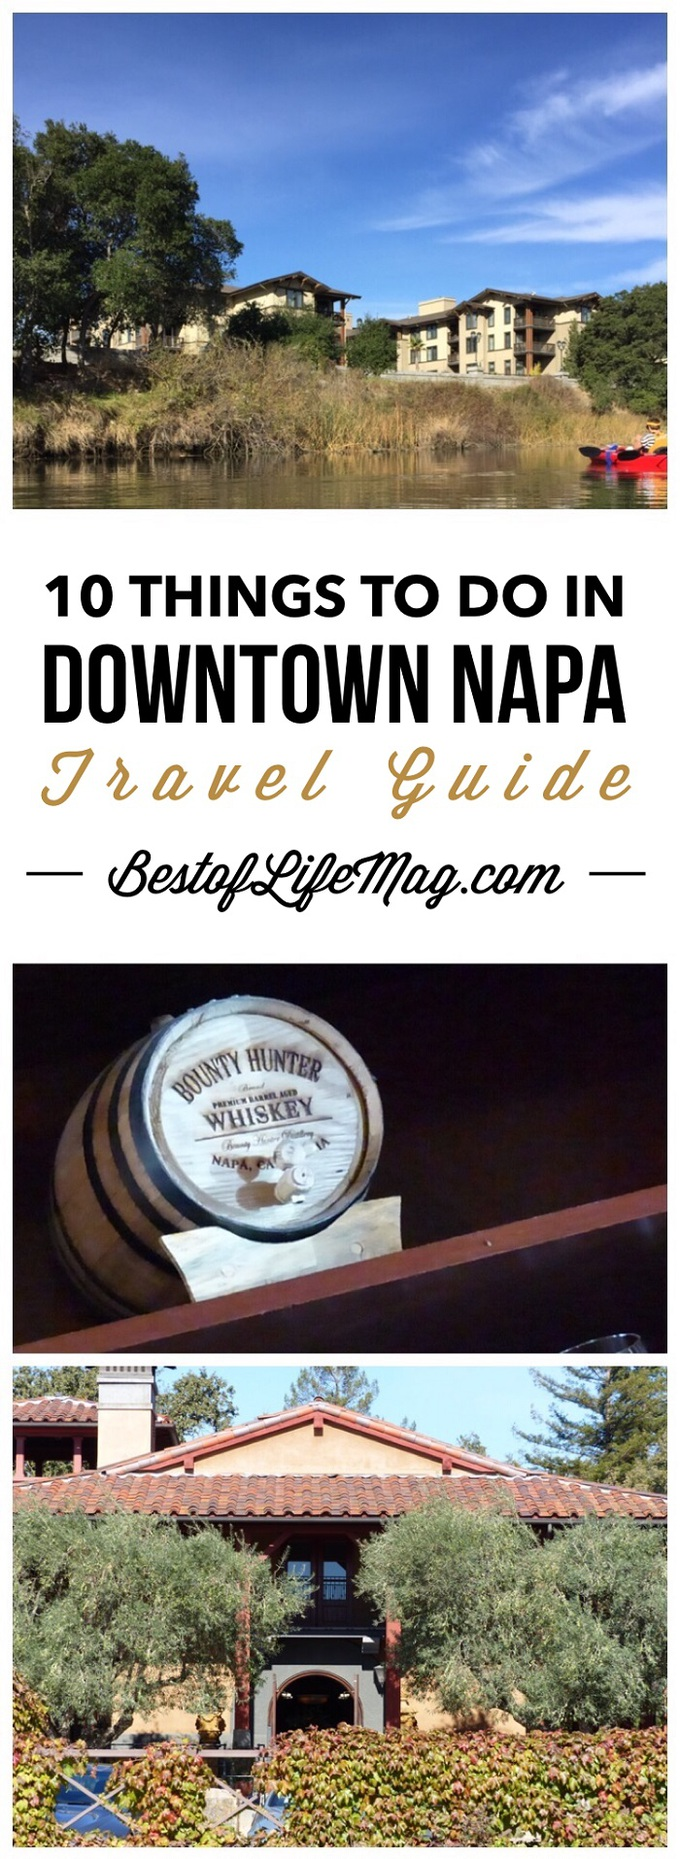 Make the Most of your Trip to Downtown Napa with this list of things to do in the area.